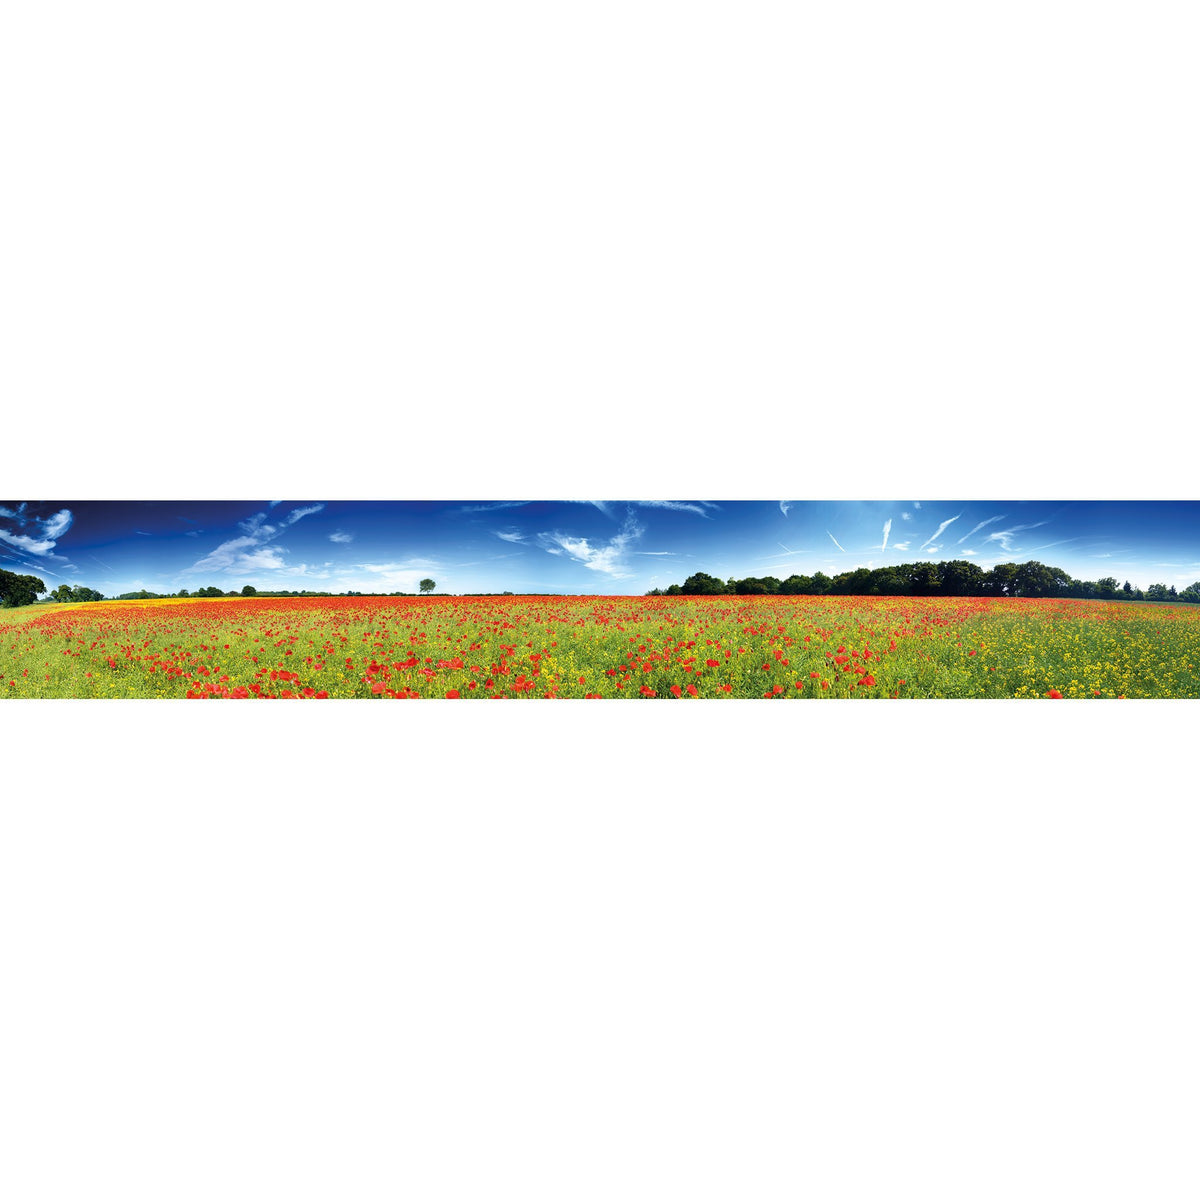 Wall Acoustics Full Size Mural Muffle Mural - Poppies Full Size Mural